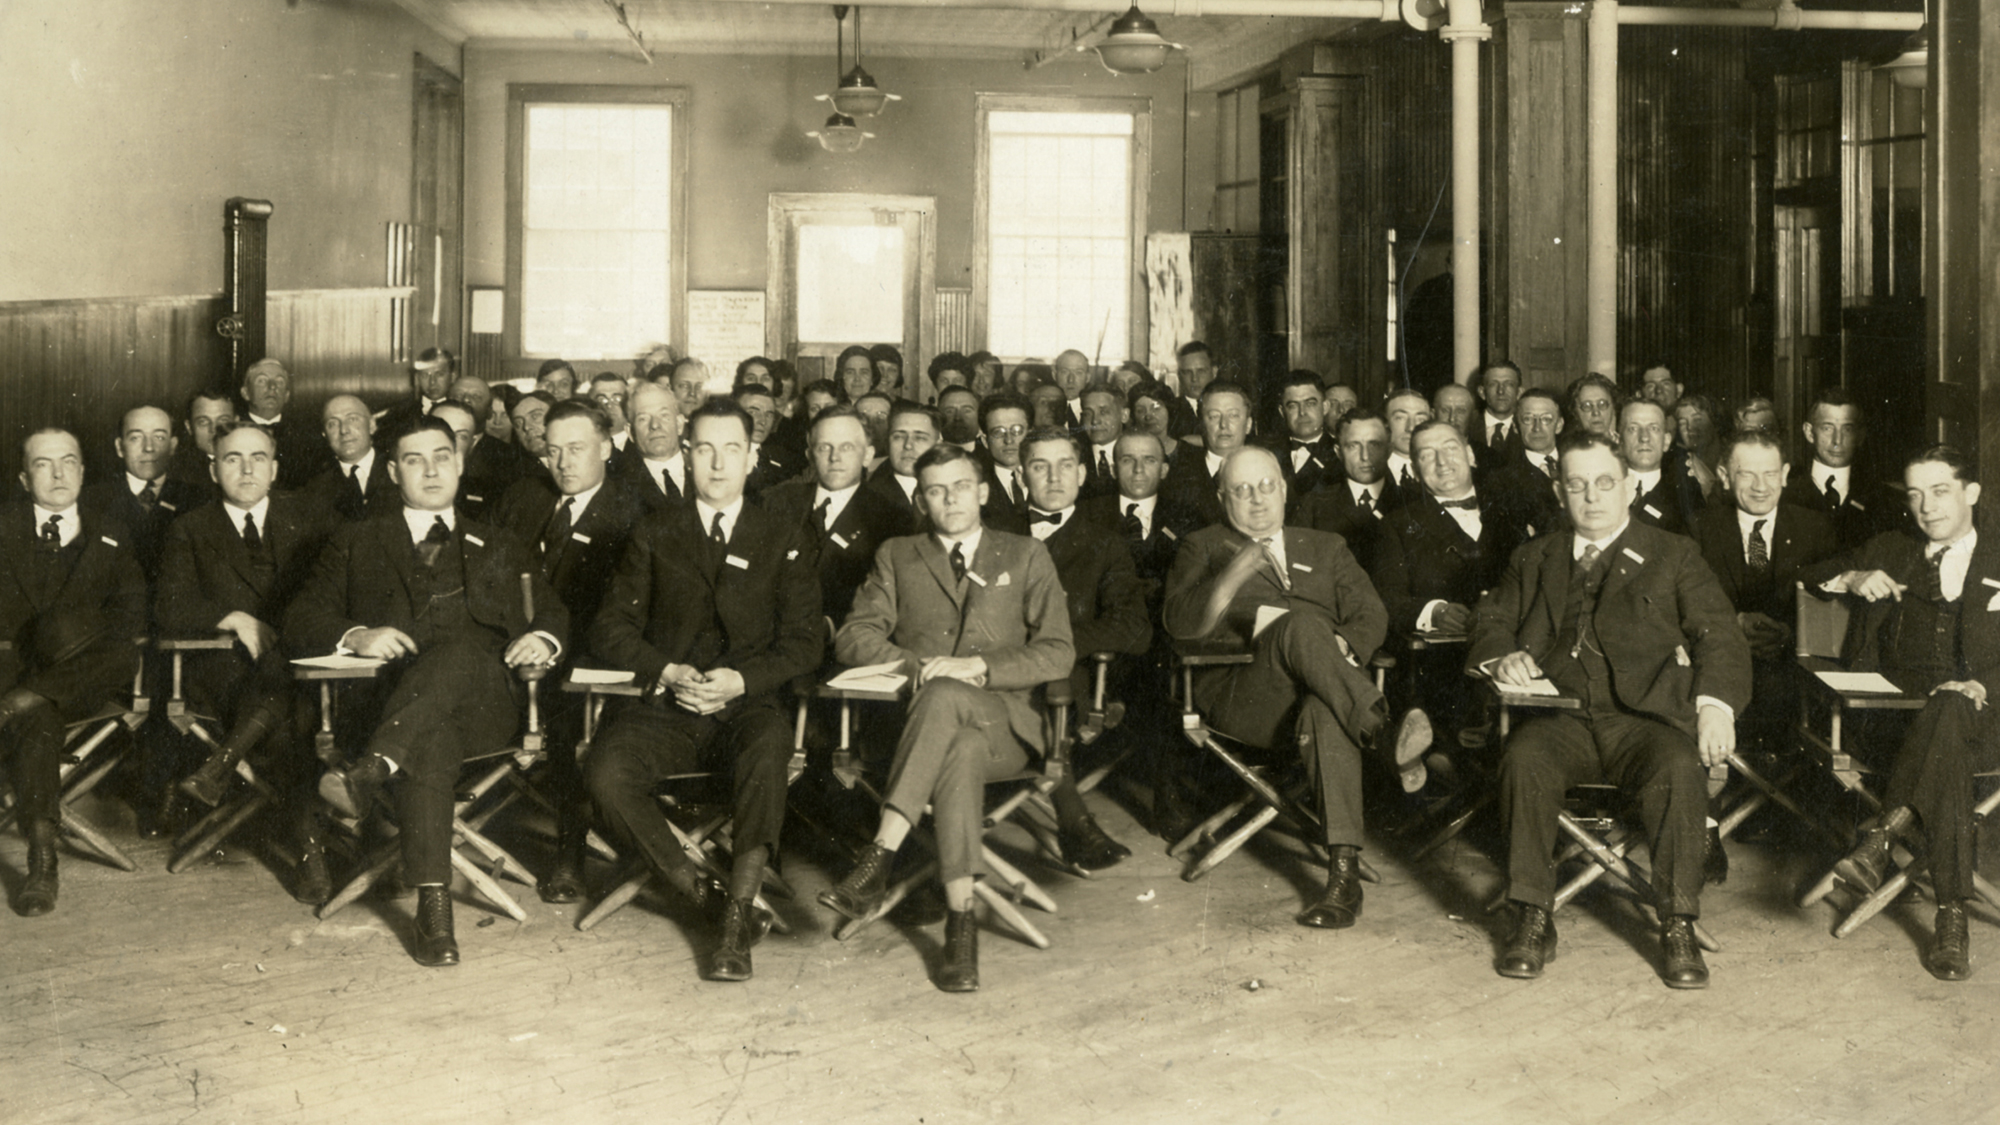 Herbert F. Johnson sitting front row at SC Johnson